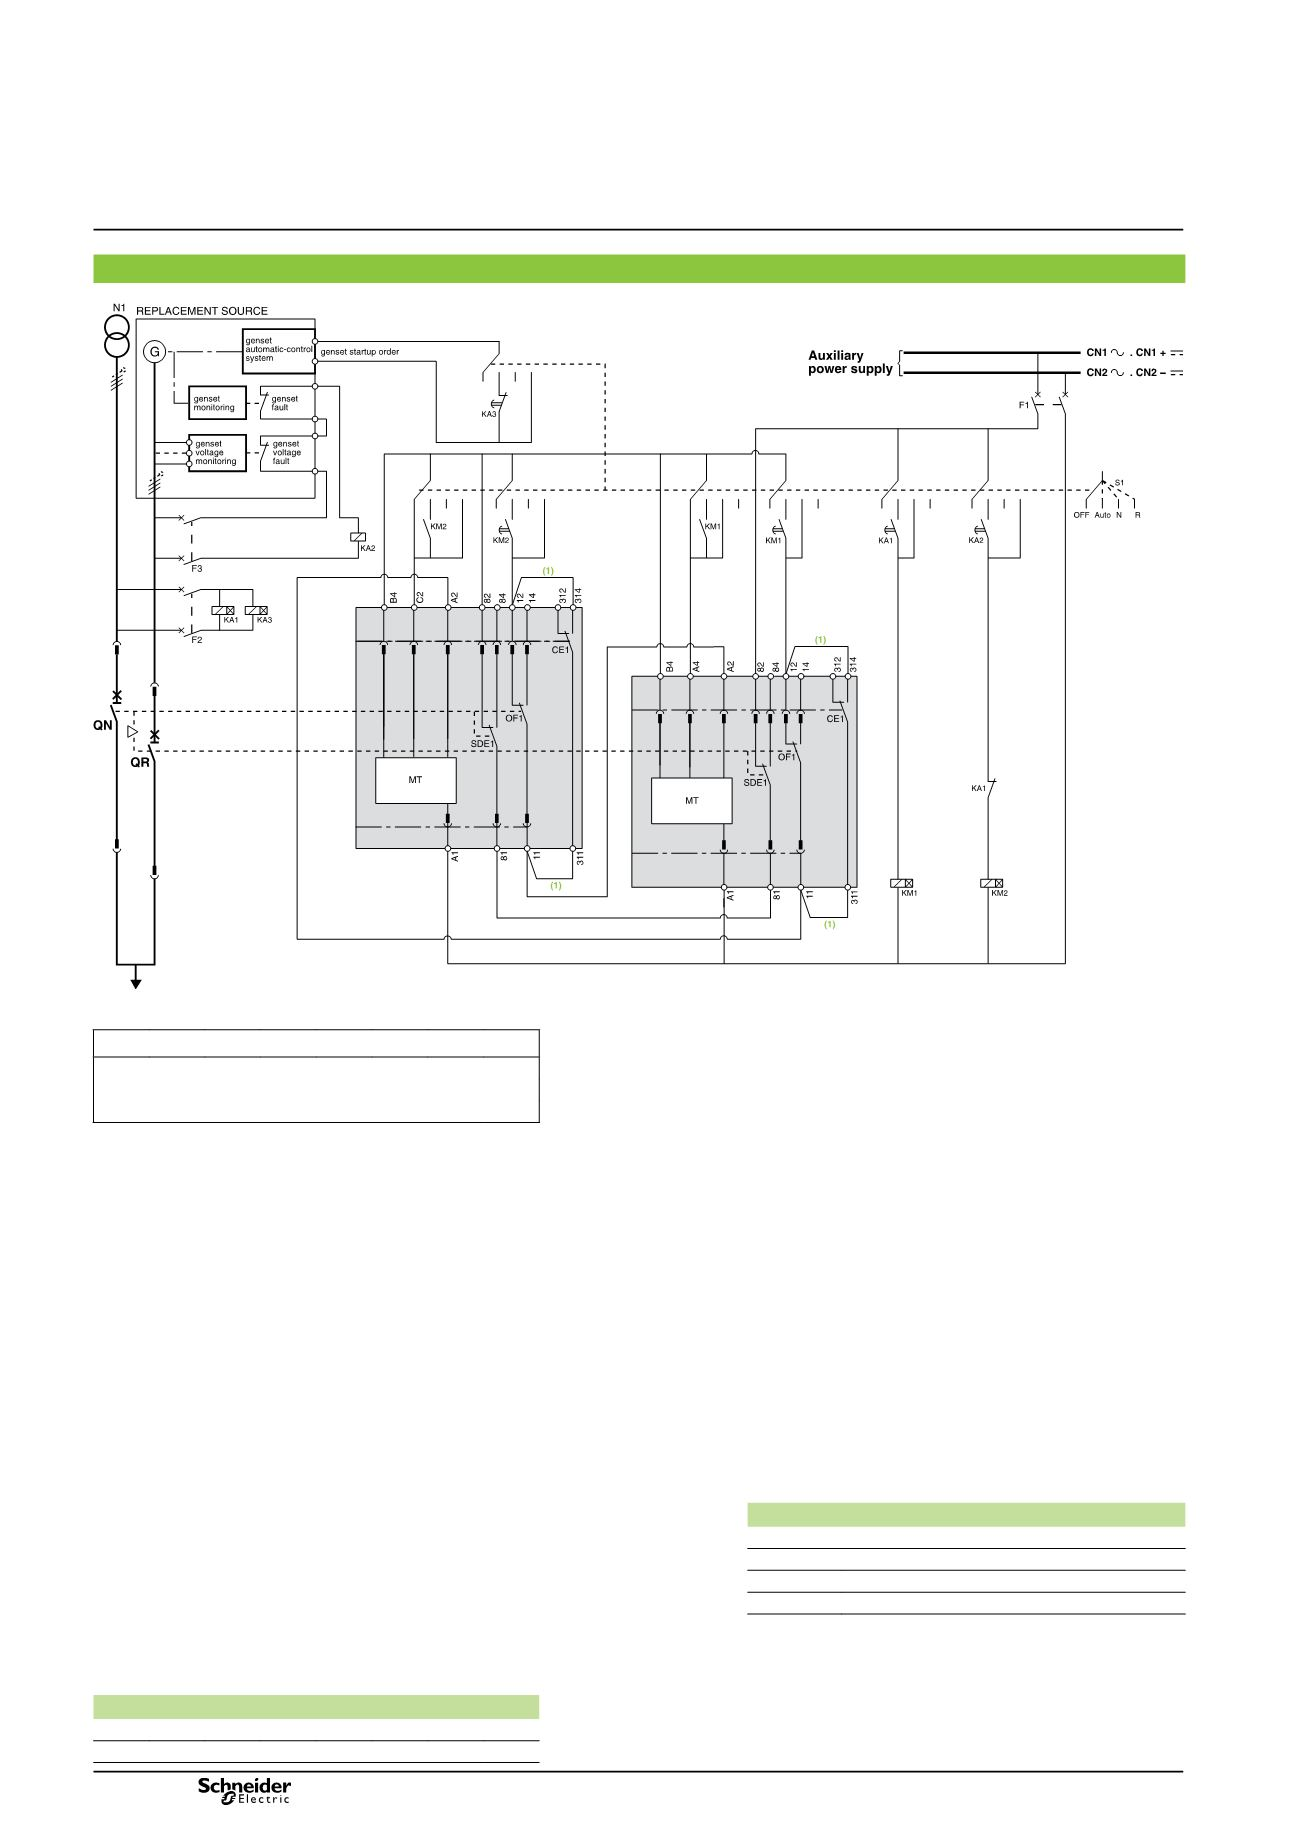 Circuit Breaker Control Circuit Diagram